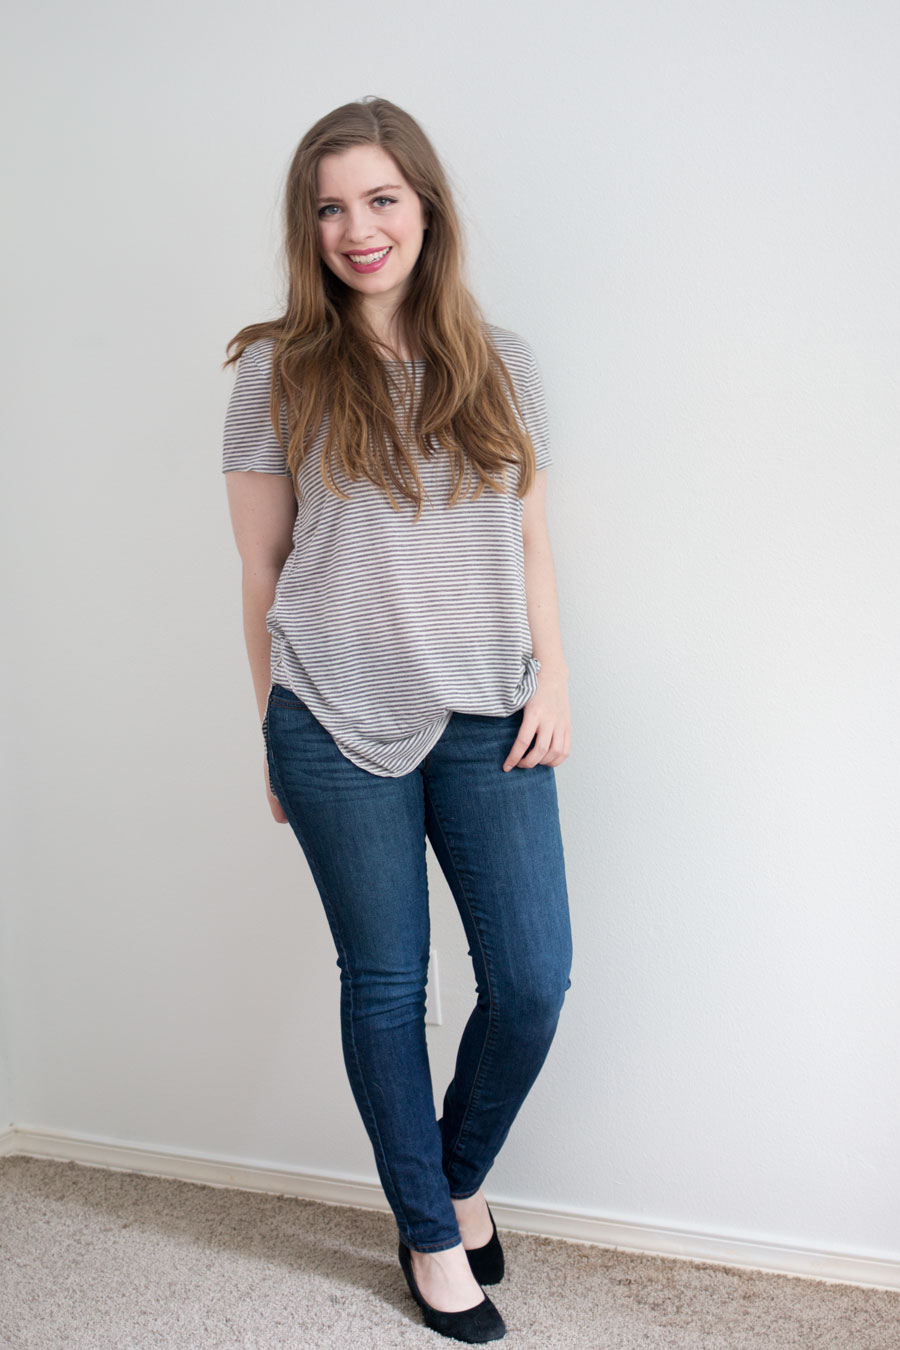 Daily Look Elite Box Review:  Gentle Fawn Manray Top in Gray Stripes / hellorigby seattle fashion blog